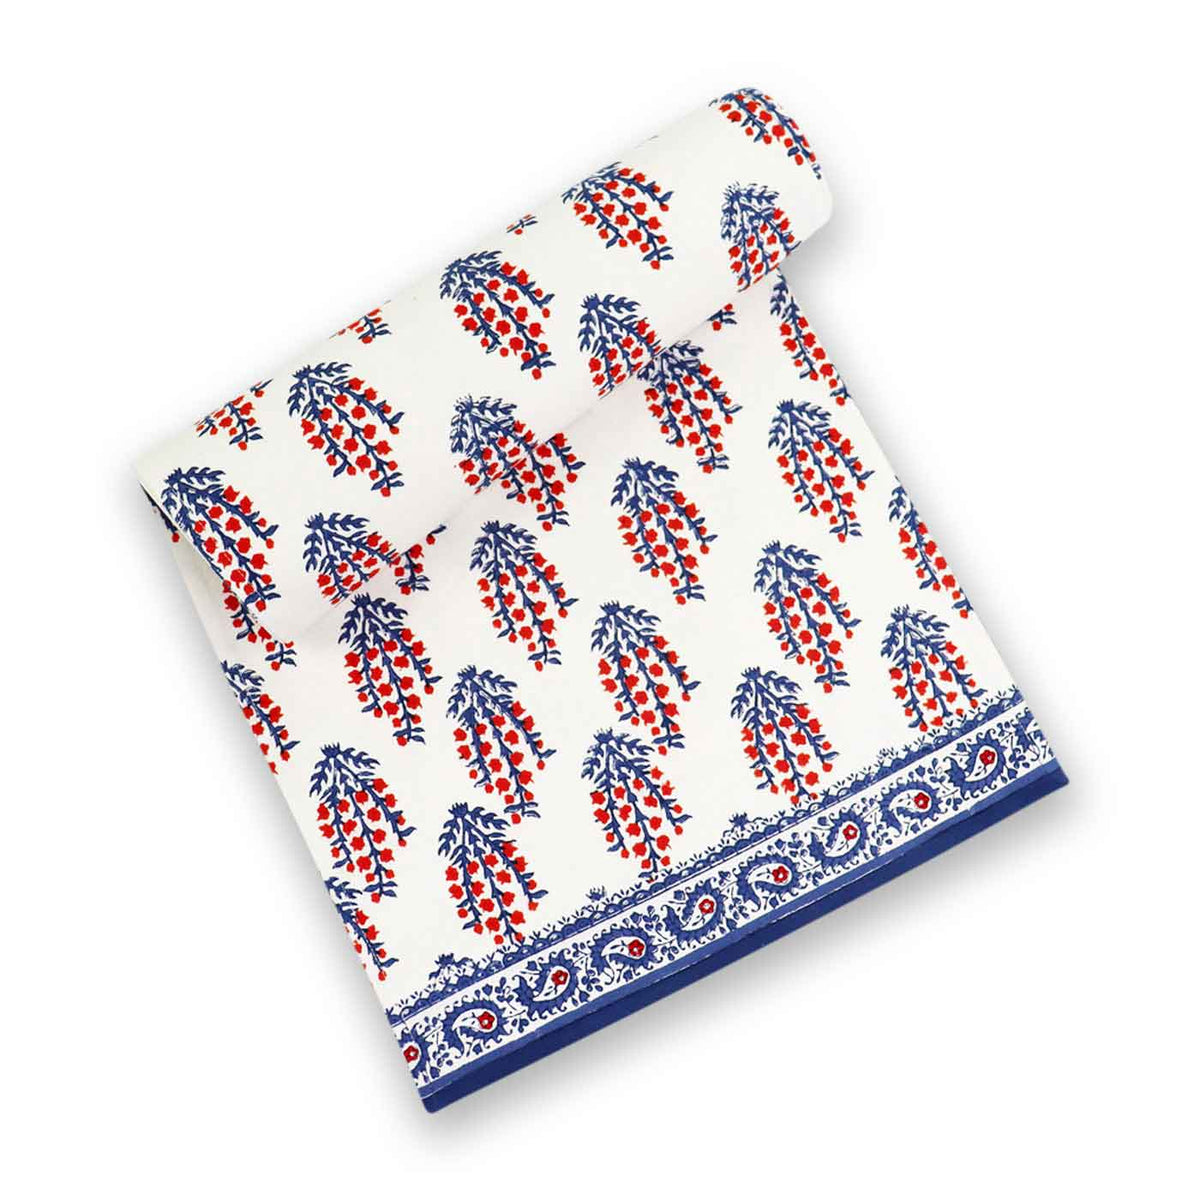 Sagar Red & Blue Table Runner